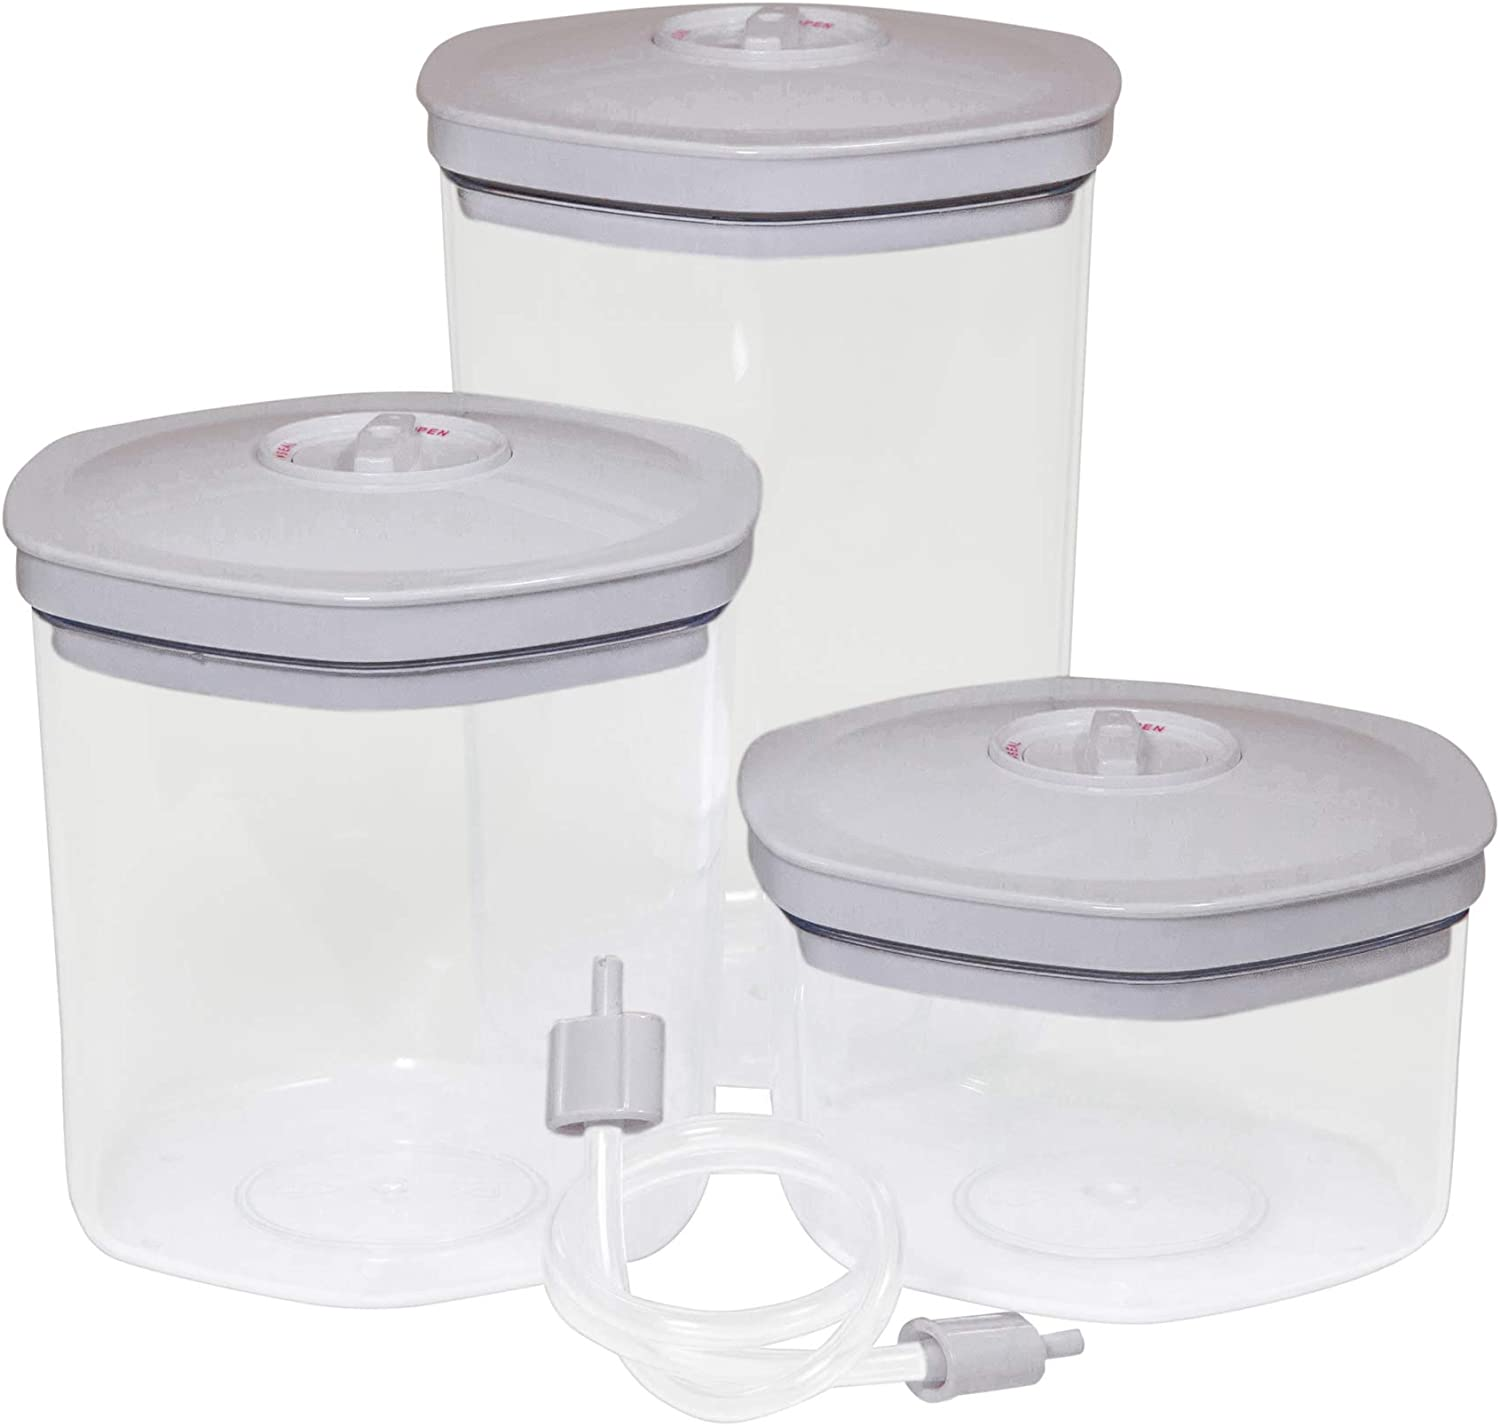 NEW Vacuum Food Storage Canisters 3-Piece Set Clear Bottoms with White Locking Lids and Includes Universal Hose Attachment Keep Foods, Snacks, Coffee Fresh Plus for Use in Marinating Avid Armor